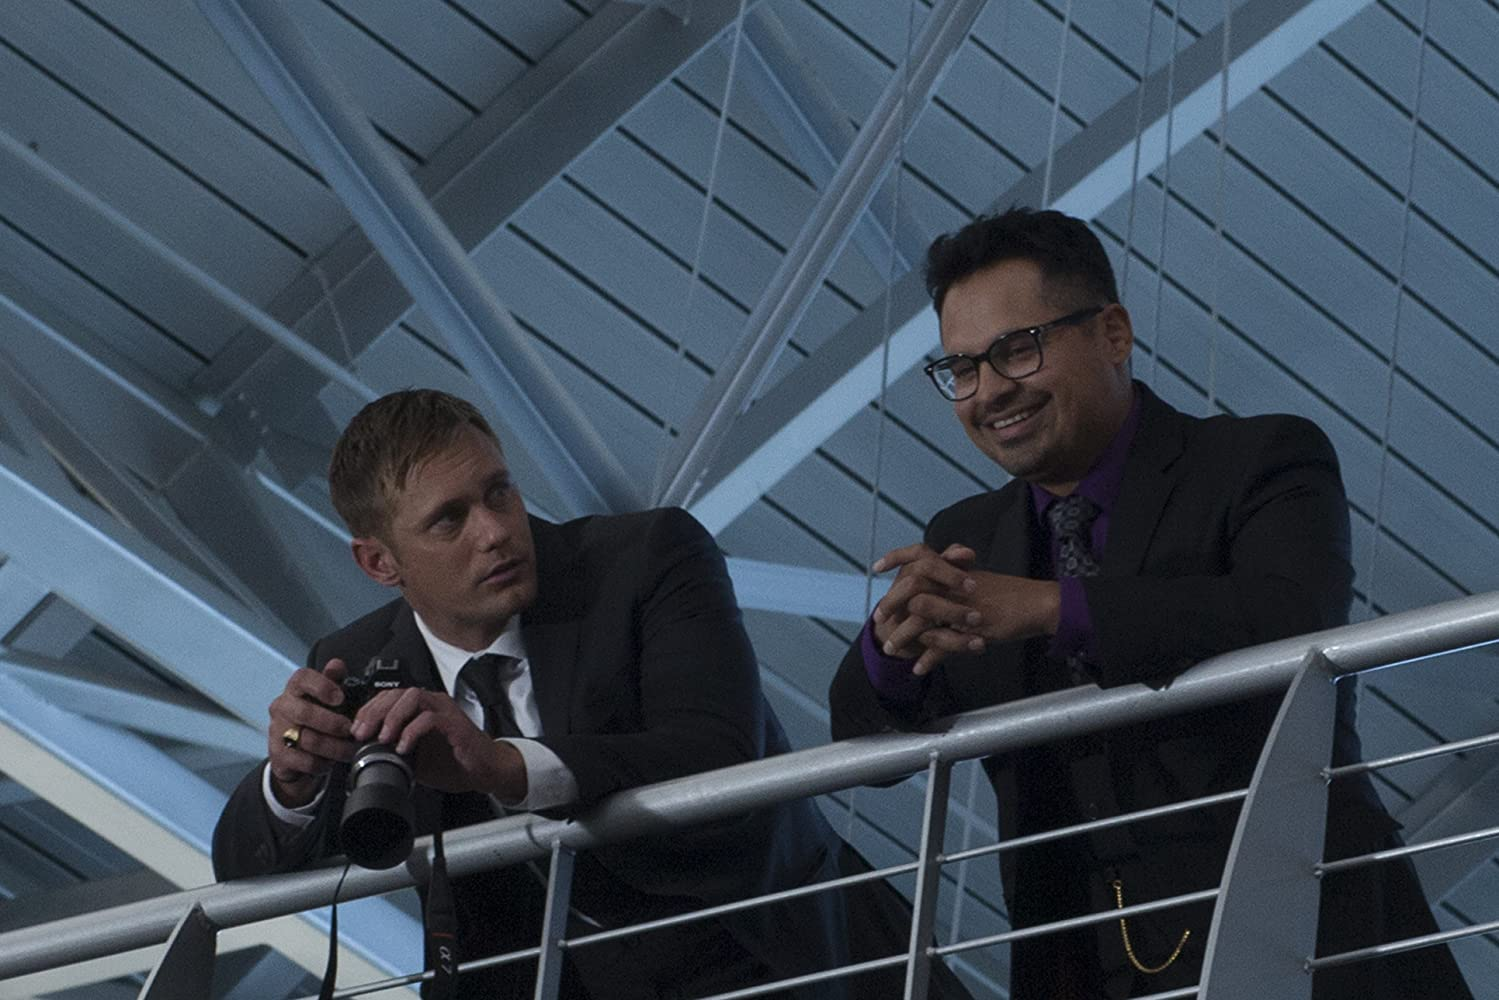 Alexander Skarsgård and Michael Peña in War on Everyone (2016)